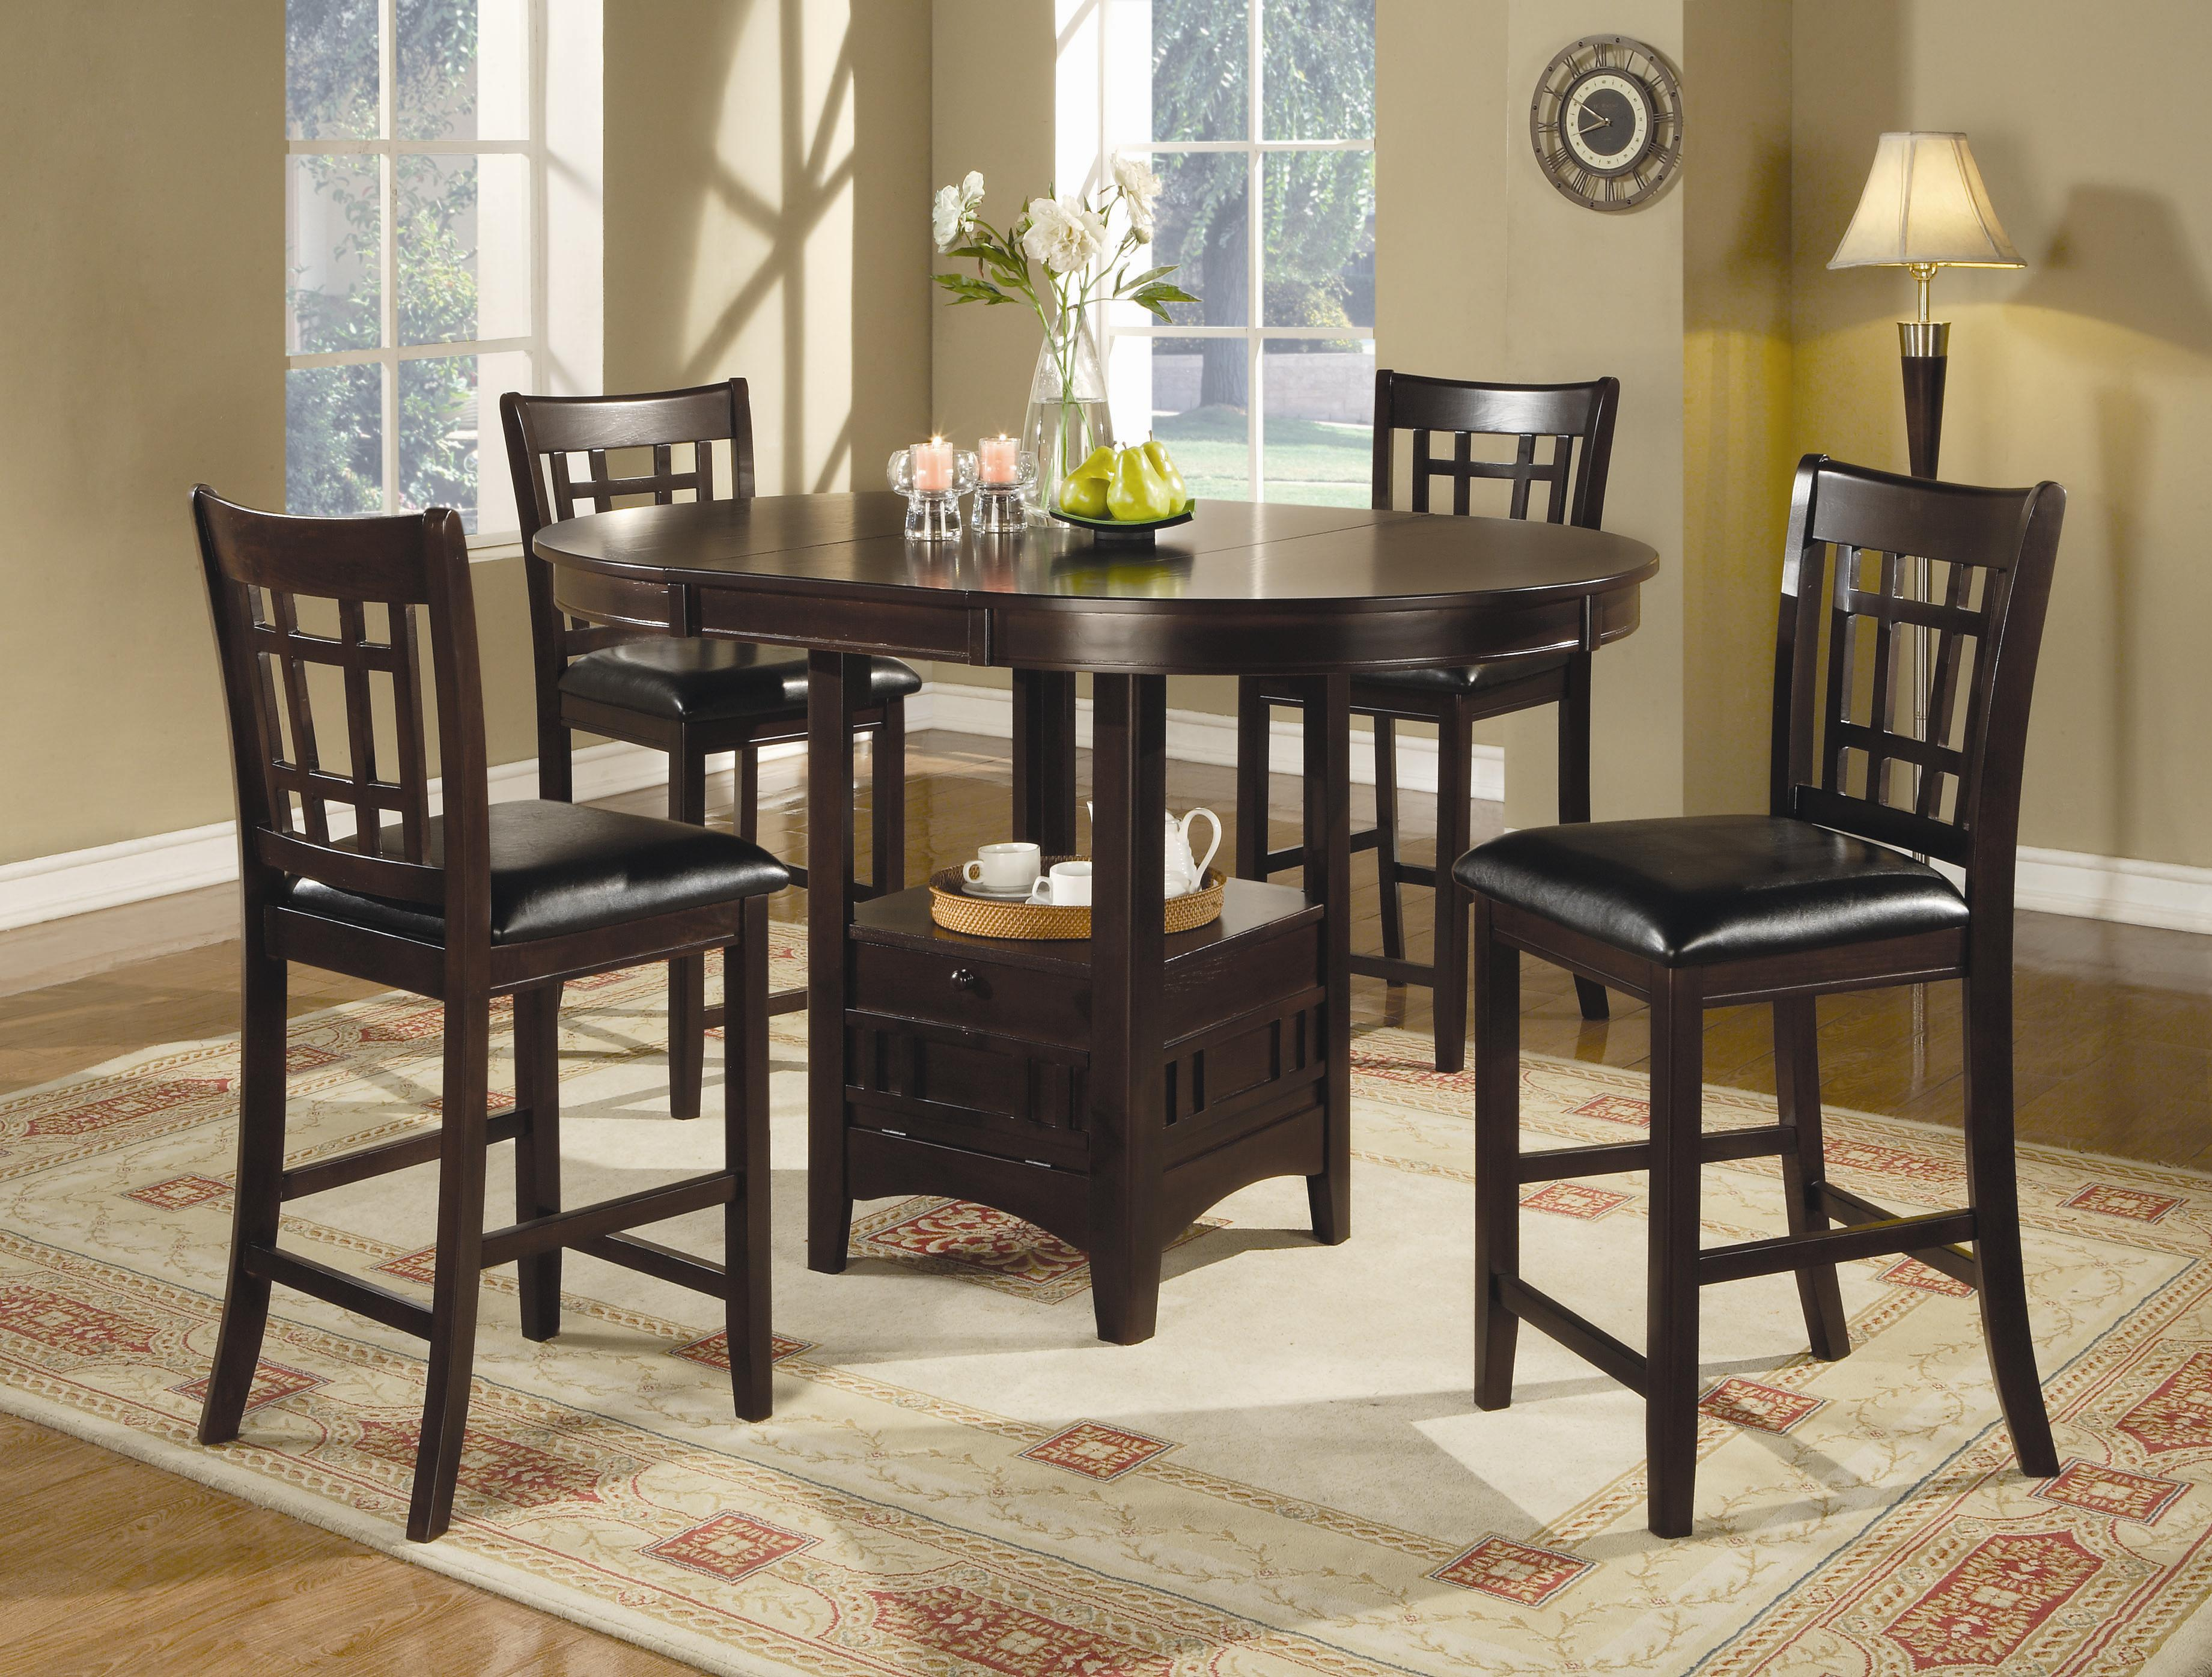 counter height kitchen chairs Coaster Lavon 5 Piece Counter Table and Chair Set Coaster Fine Furniture